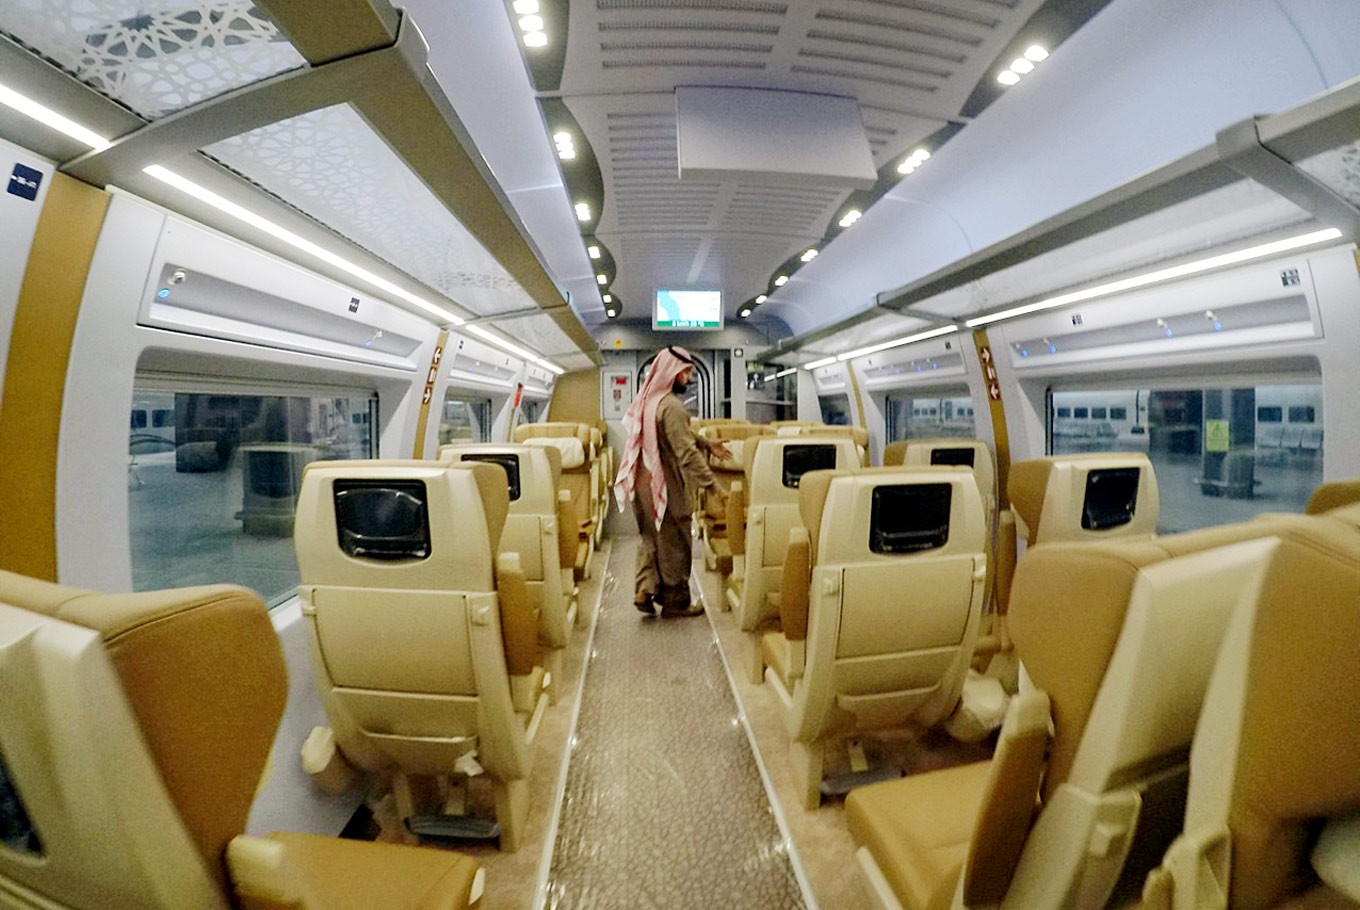 Comfort and safety: The interior of the Haramain train car provides comfort for passengers on the two-hour journey between Mecca and Medina. The Haramain route retraces the journey Prophet Muhammad took when he made the perilous journey from Mecca to Medina in the 7th century.